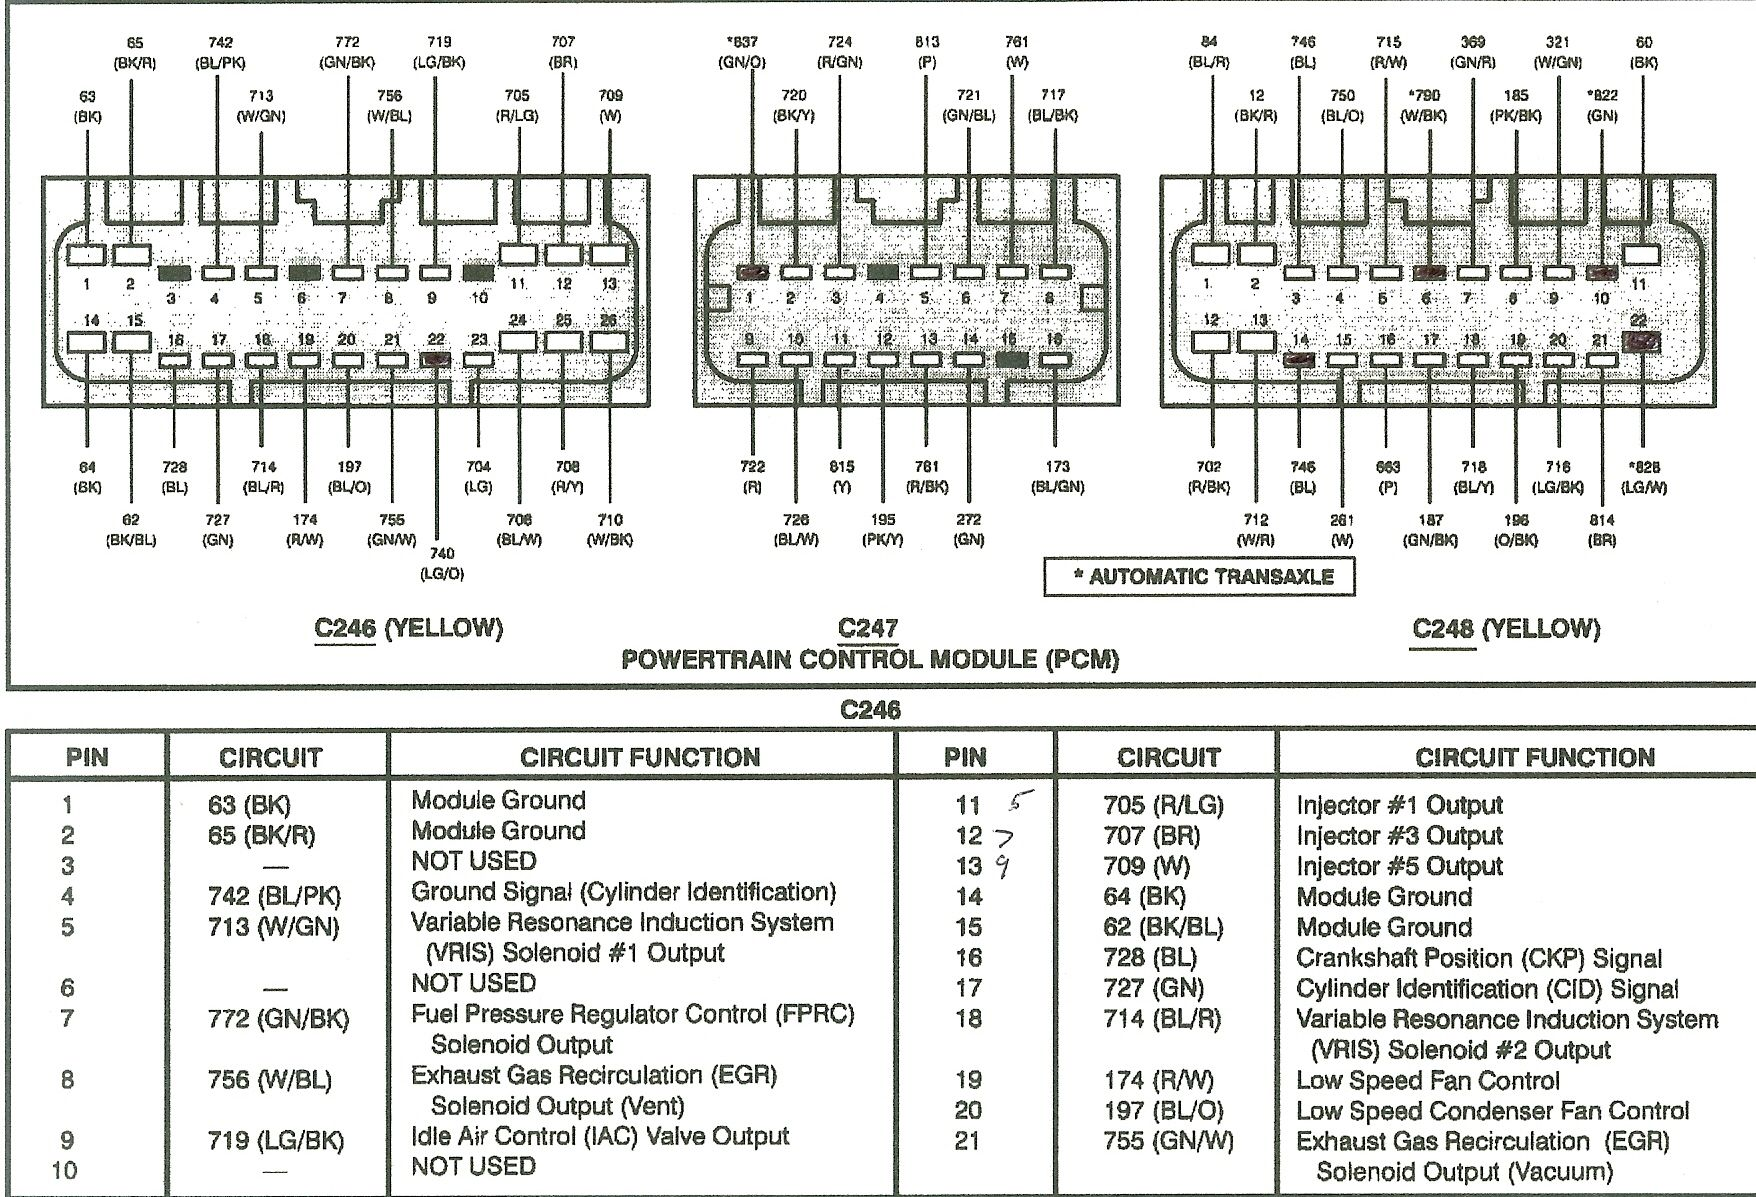 🏆 [DIAGRAM in Pictures Database] Civic Obd2 Fuel Injector Wiring Schematic  Just Download or Read Wiring Schematic - ONLINE.CASALAMM.EDU.MX Complete Diagram Picture Database